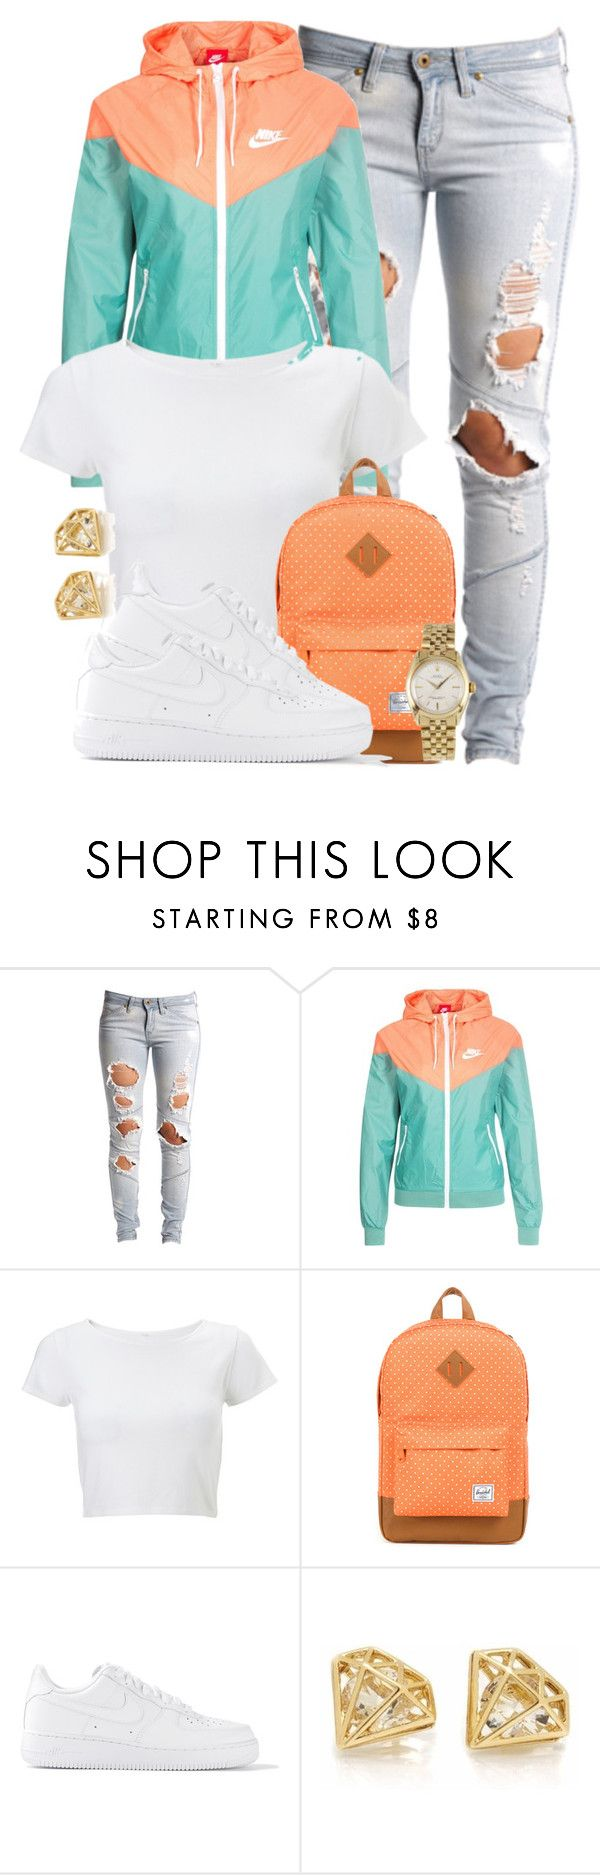 """""""Nike Sportswear Windrunner Jacket."""" by cheerstostyle ❤ liked on Polyvore featuring Lee, NIKE, Lipsy, Herschel Supply Co., Rolex, women's clothing, women, female, woman and misses"""